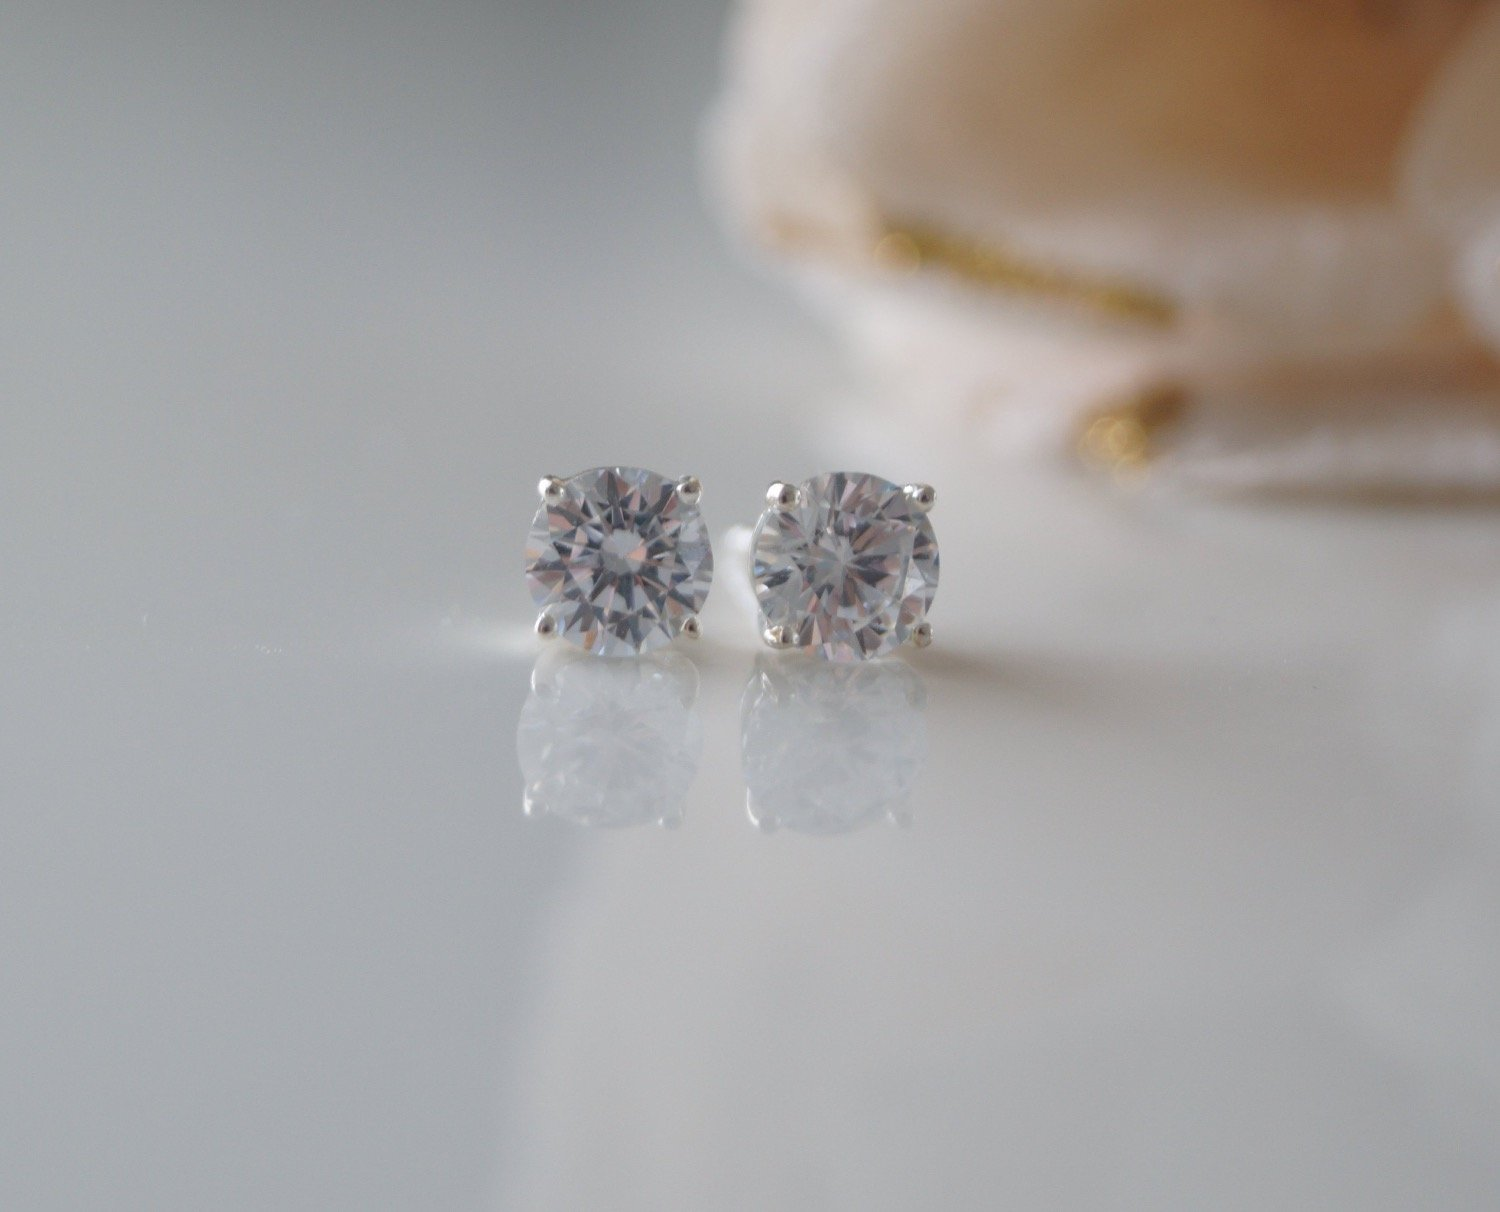 Crystal Cubic Zirconia Stud Earrings Wedding Jewelry - Clairesbridal - 4